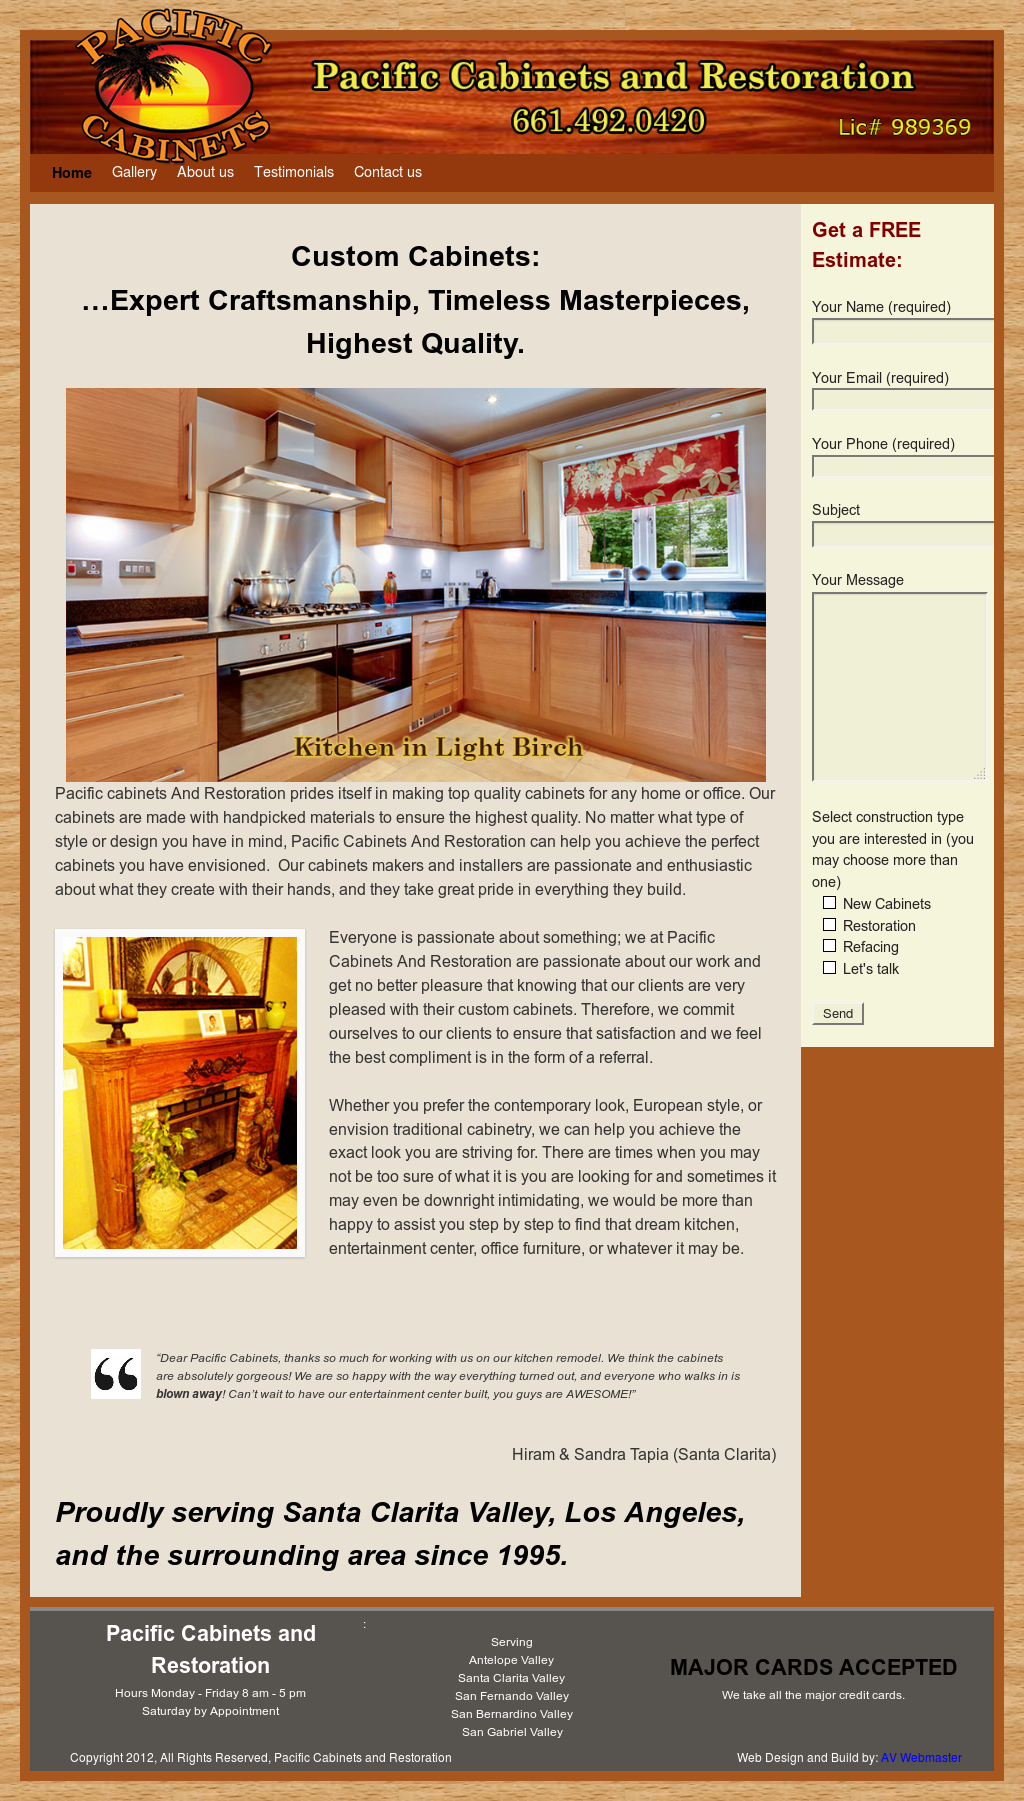 Pacific Cabinets And Restoration Website History